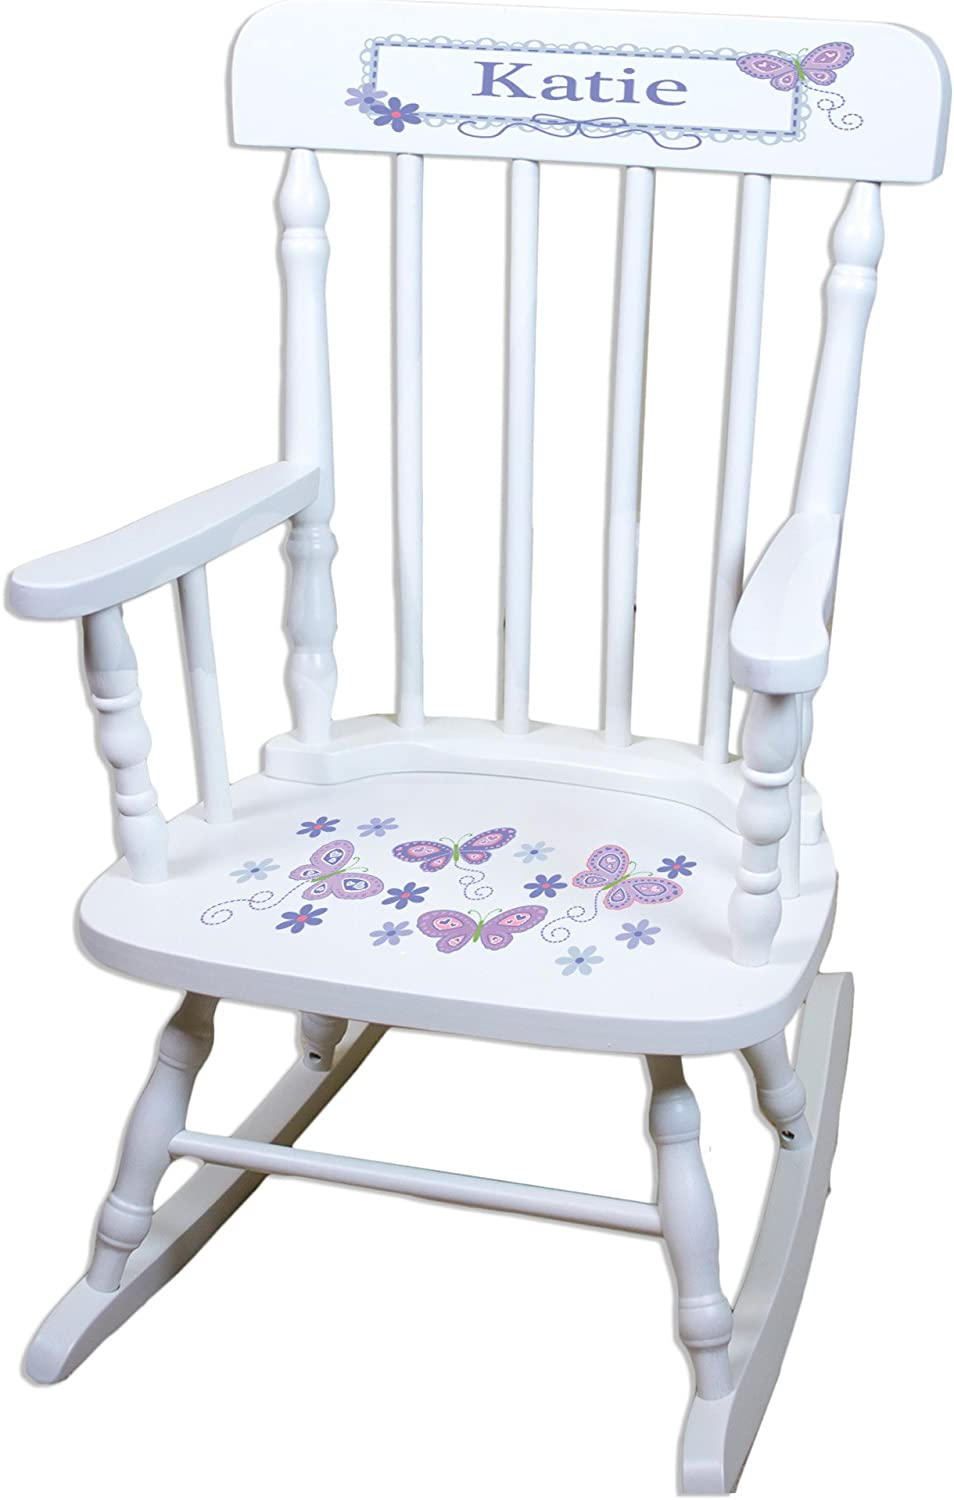 MyBambino Personalized White Childrens Chair In stock Lavend Rocking with trust